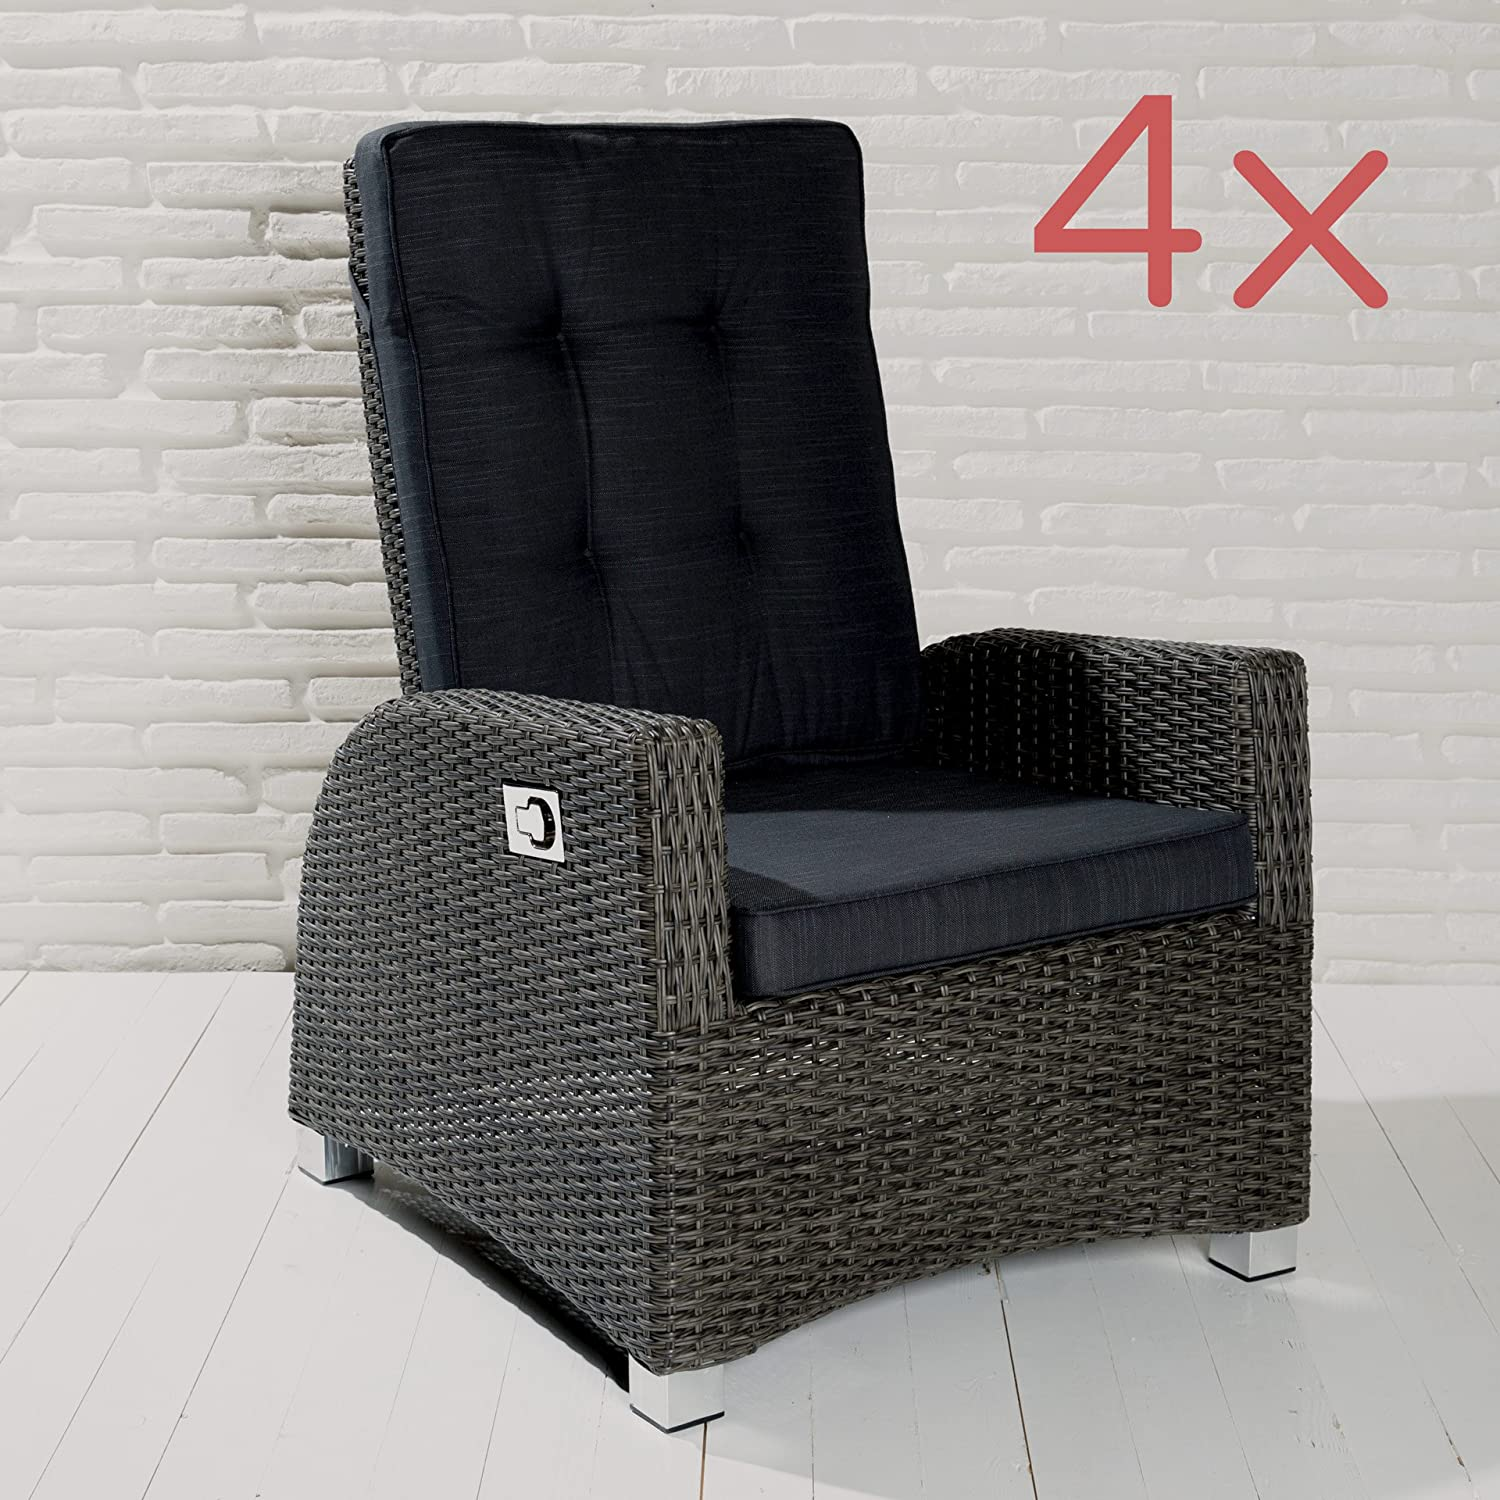 4 xl gartensessel barcelona living sessel grau ink auflage poly rattan st hle g nstig bestellen. Black Bedroom Furniture Sets. Home Design Ideas